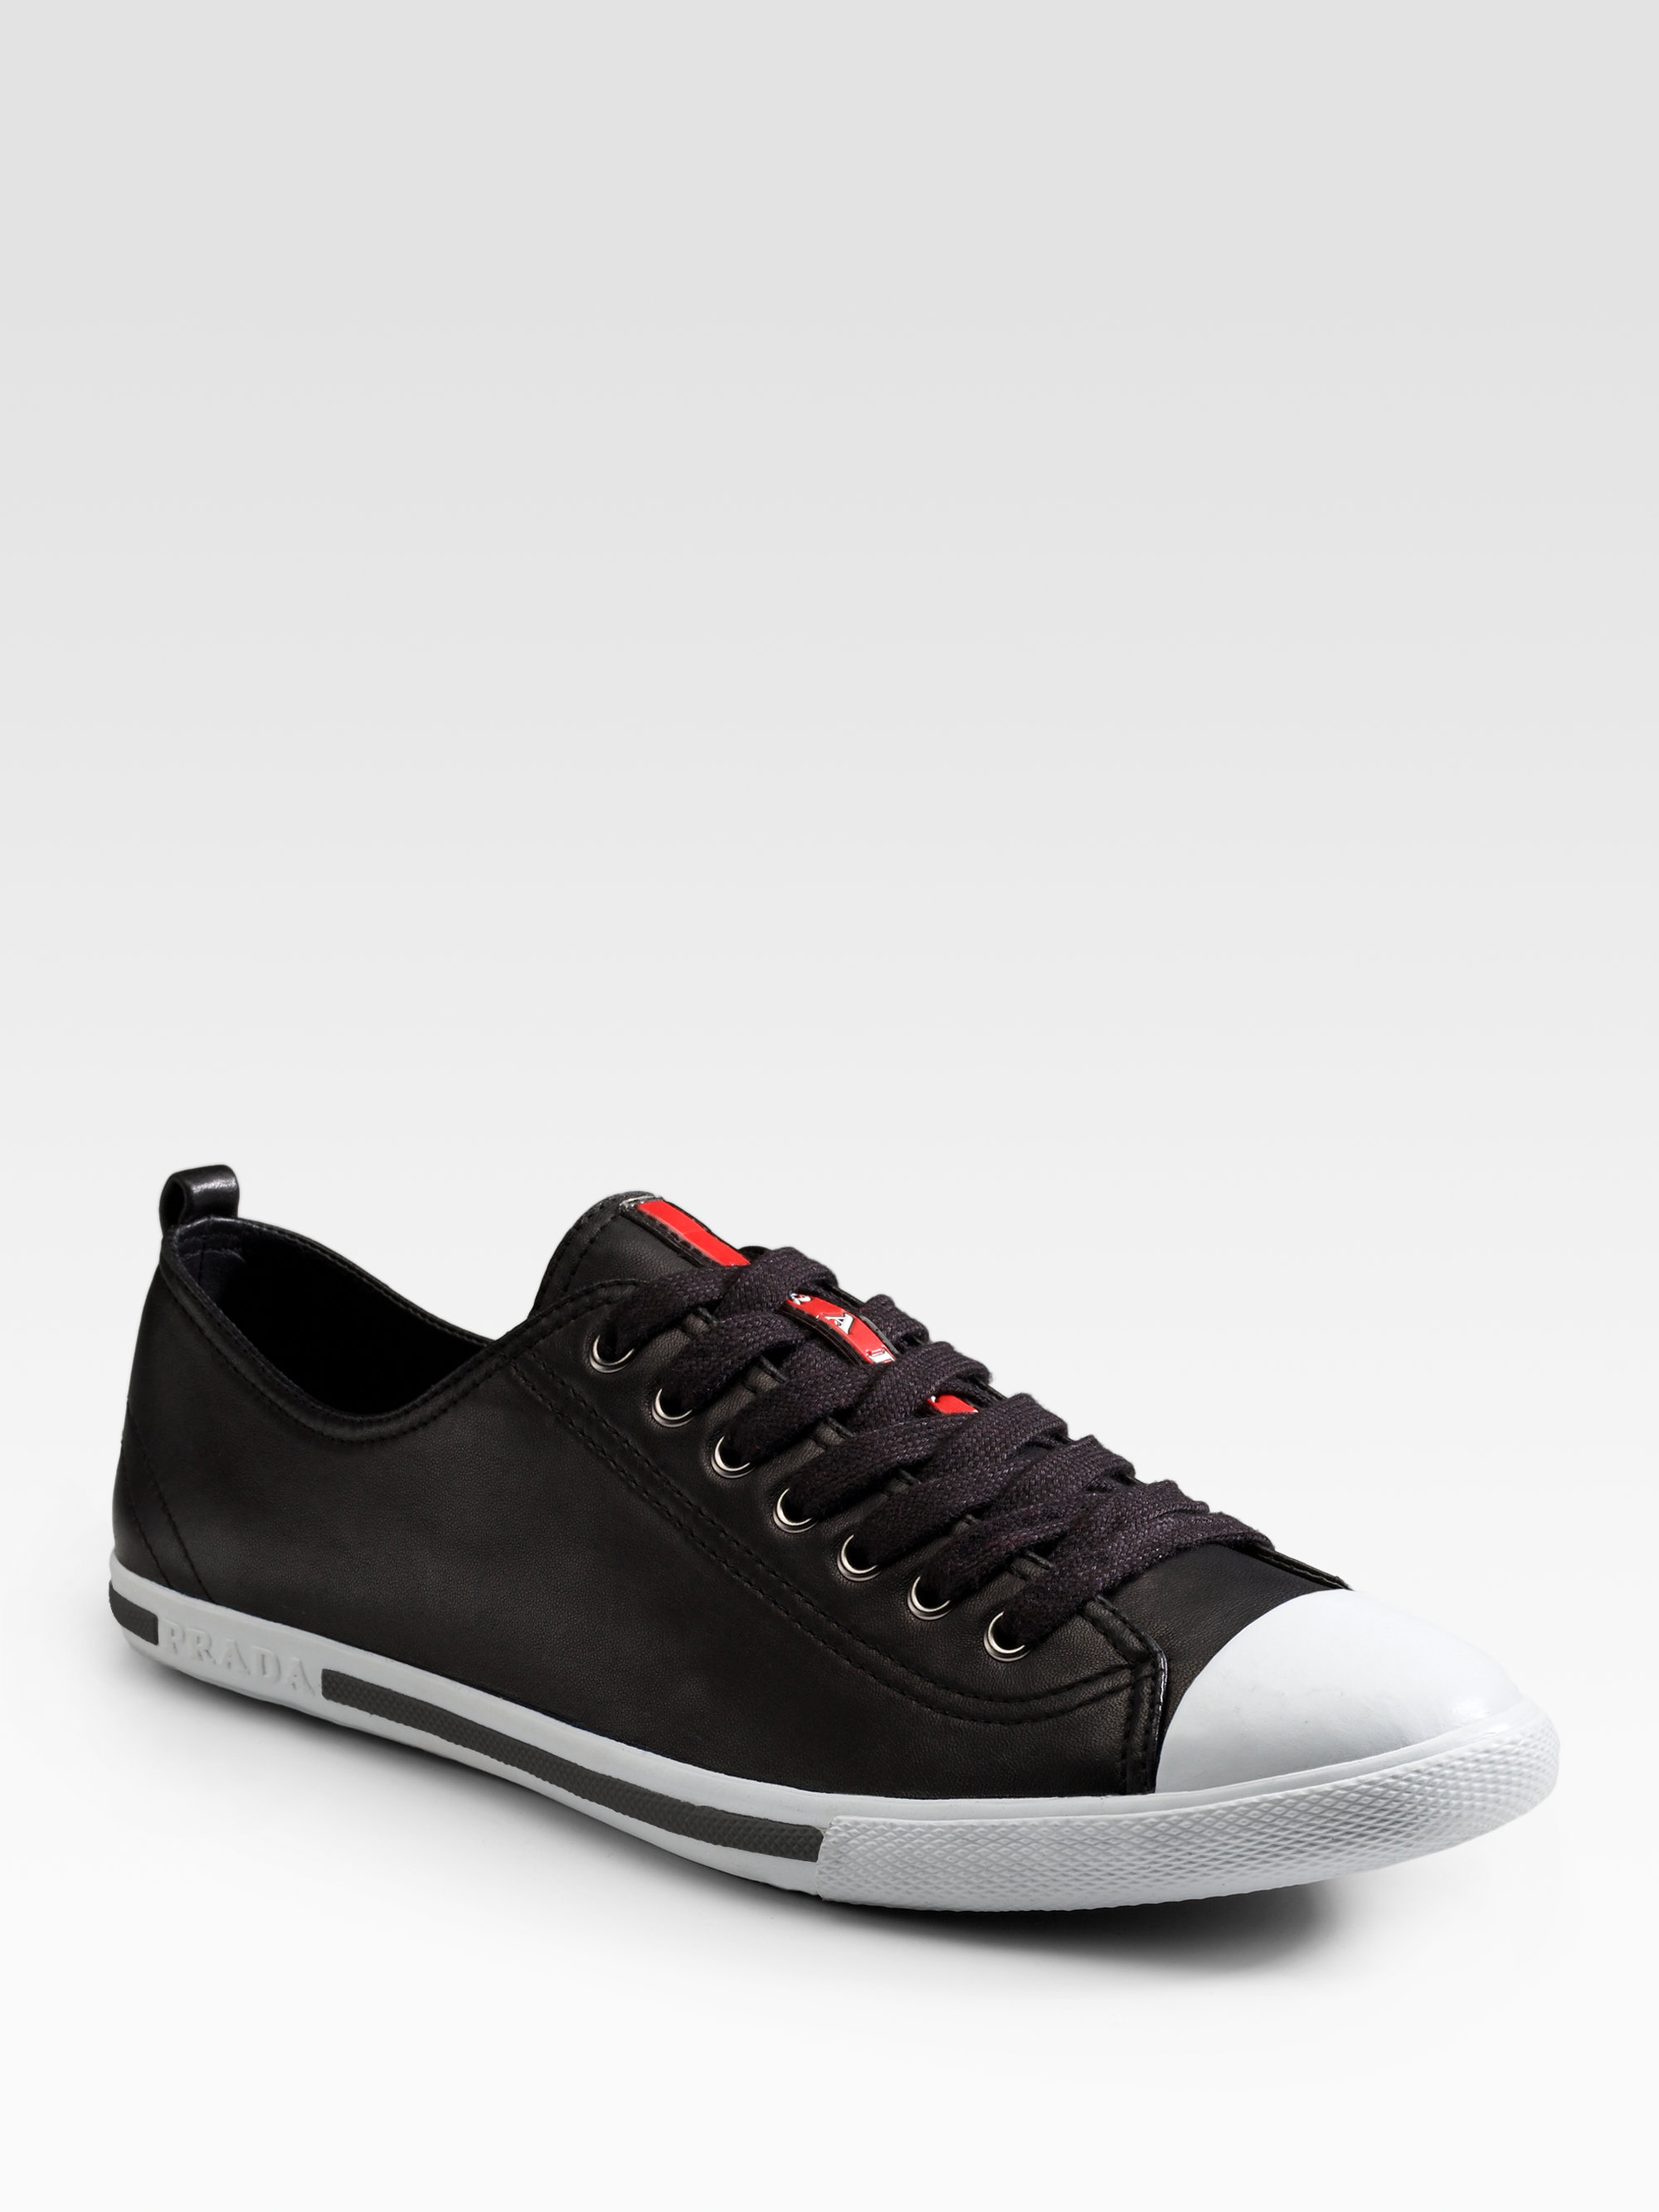 adc7218357bb ... where can i buy lyst prada nappa leather sneakers in black for men  648c7 b4e9b ...